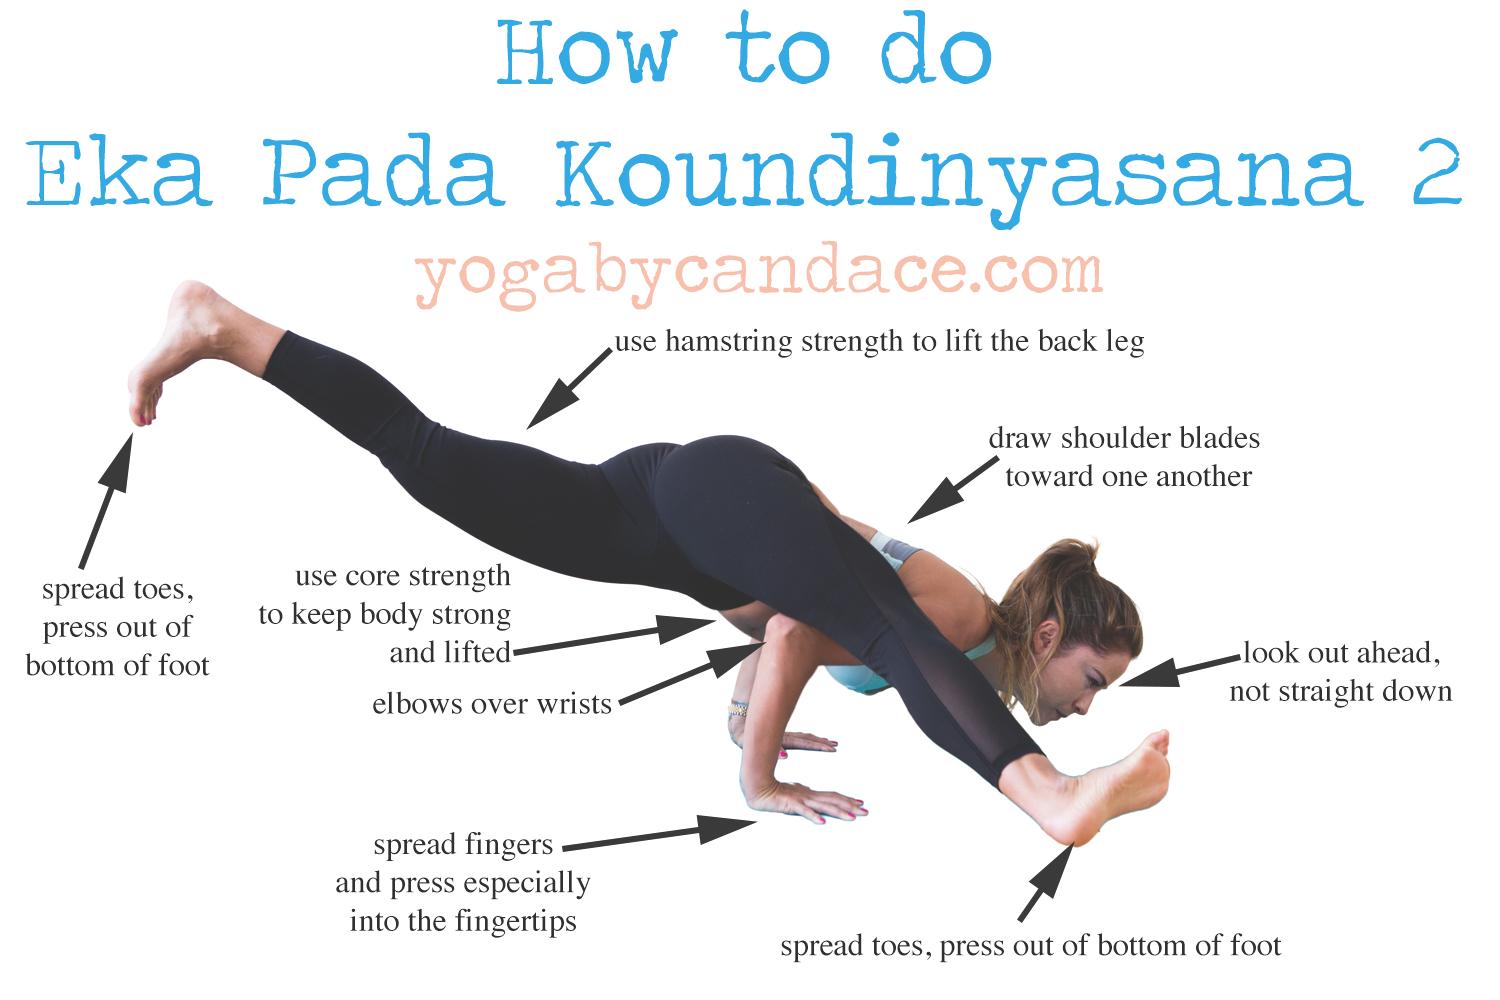 How To Do Eka Pada Koundinyasana 2 Yogabycandace